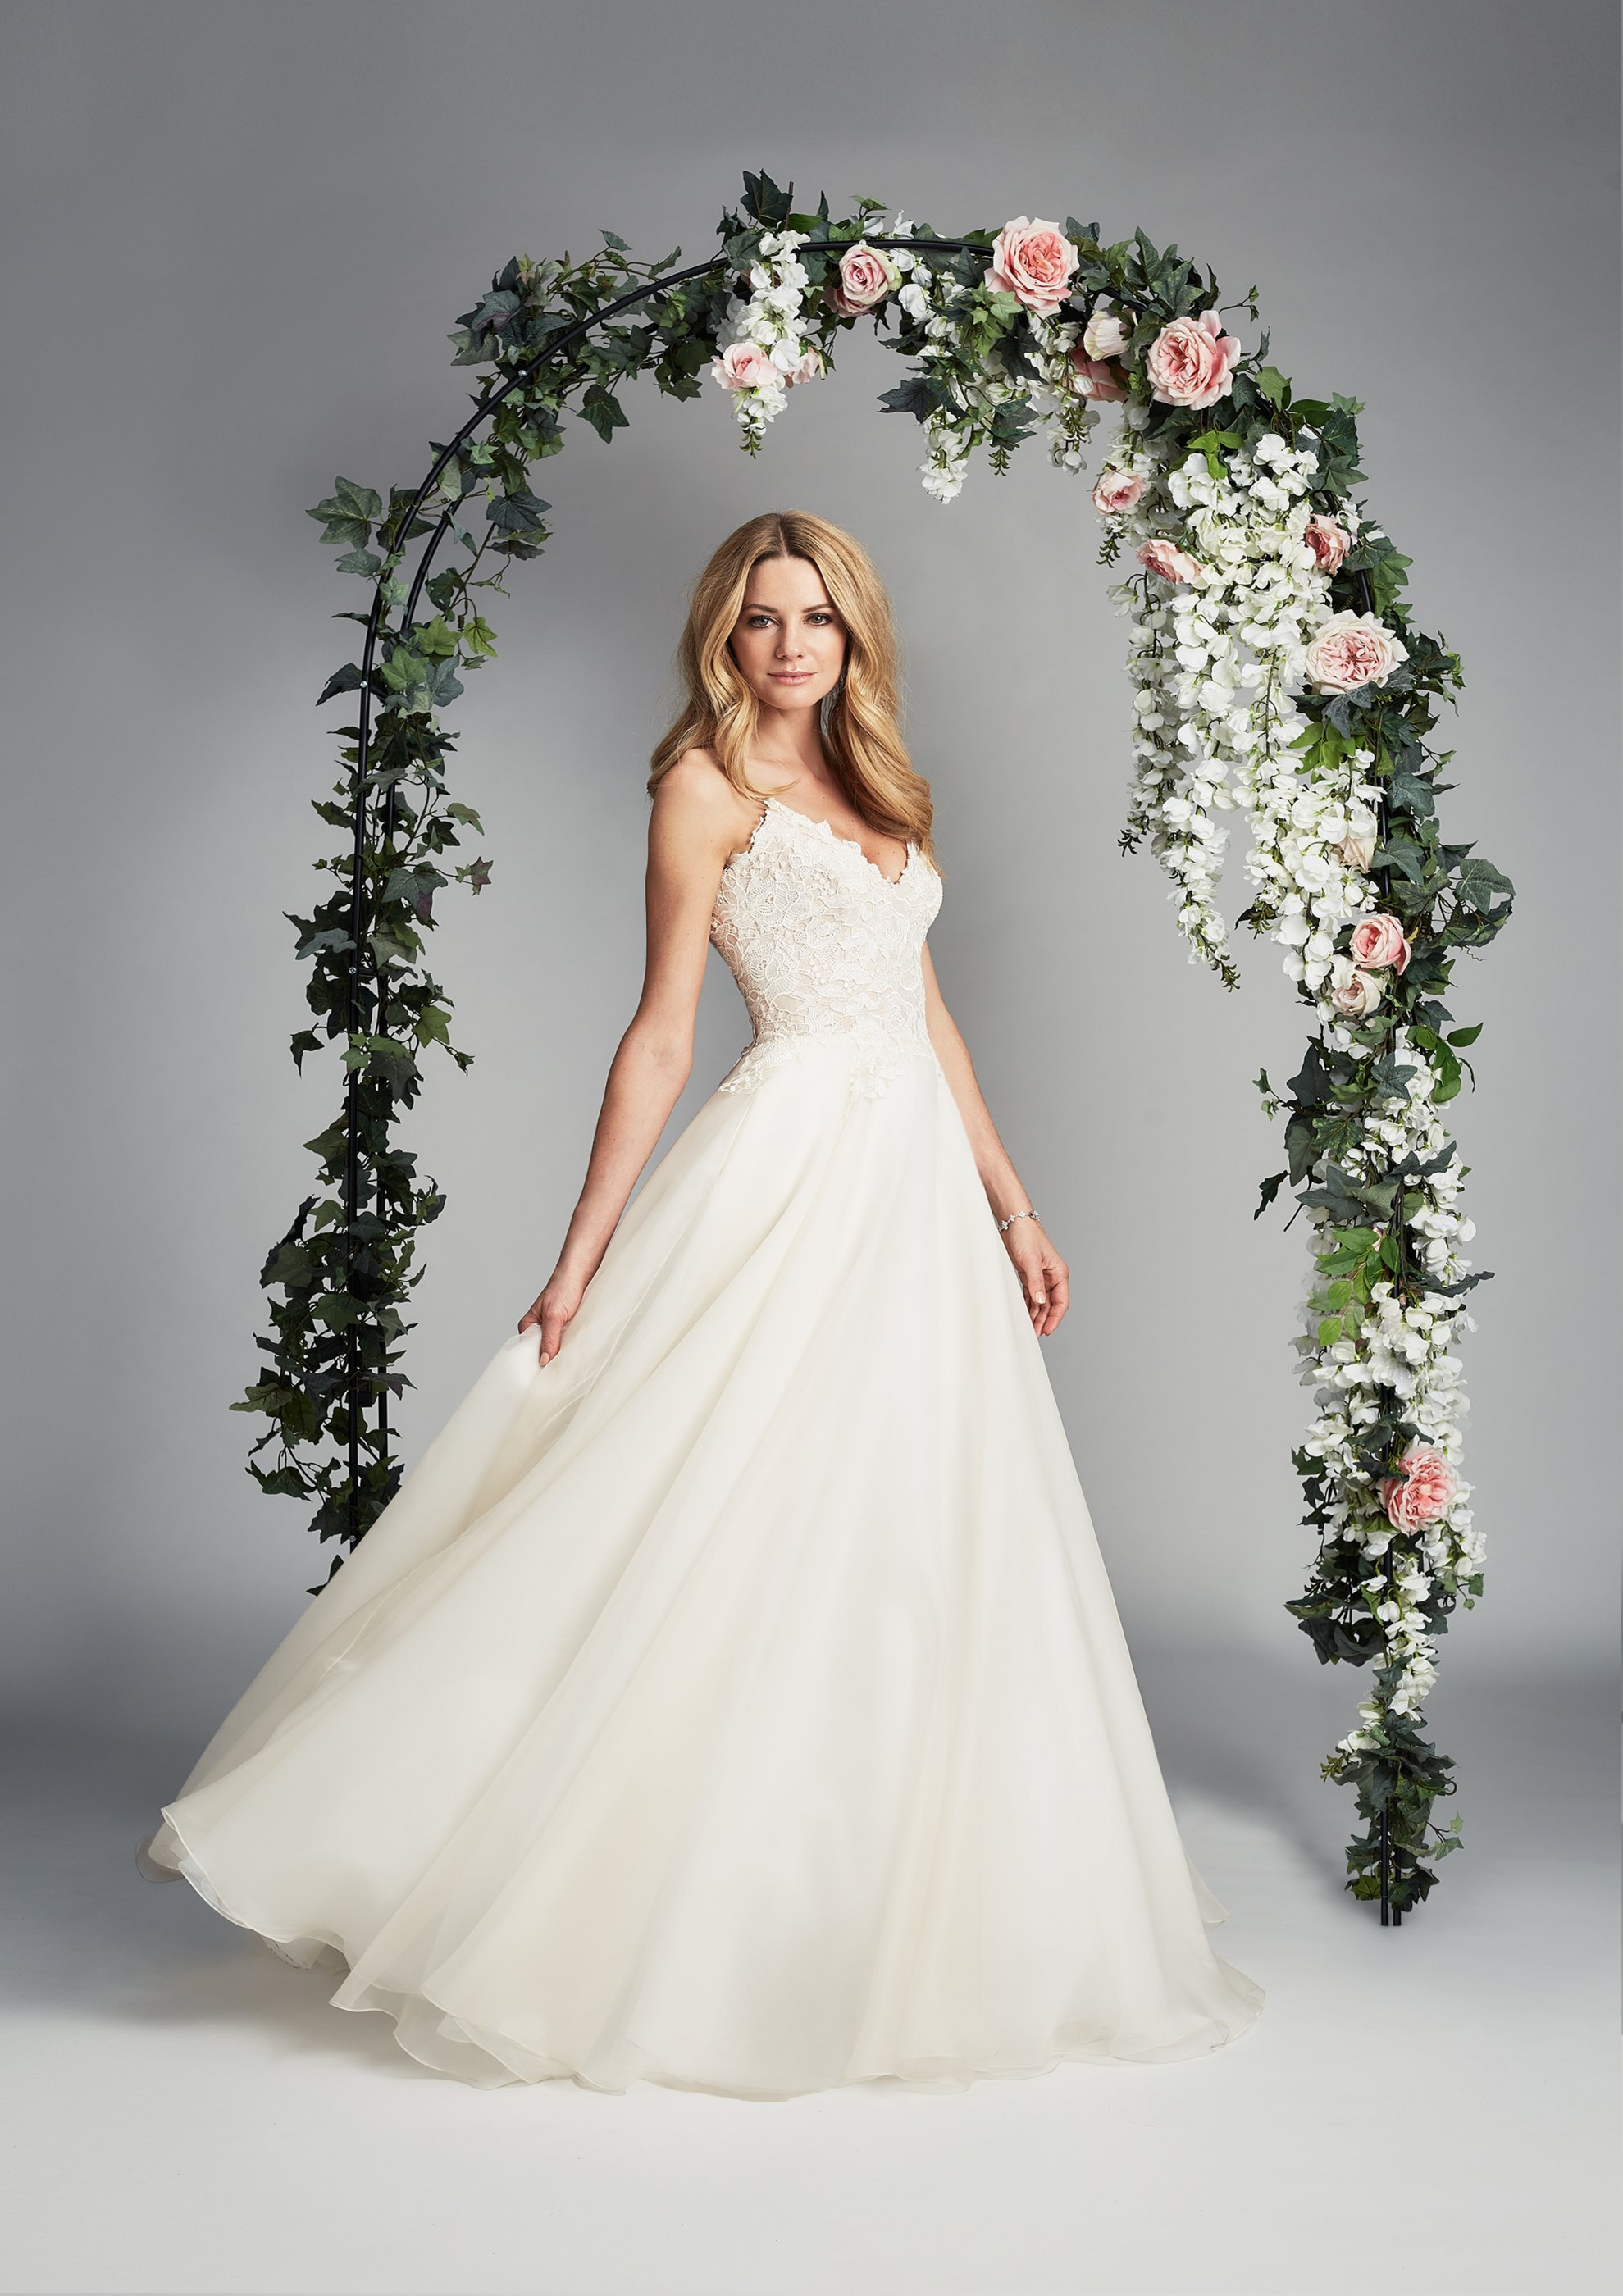 3b06686e4dc Tertia by Caroline Castigliano - How to find the perfect wedding dress -  advice from couture